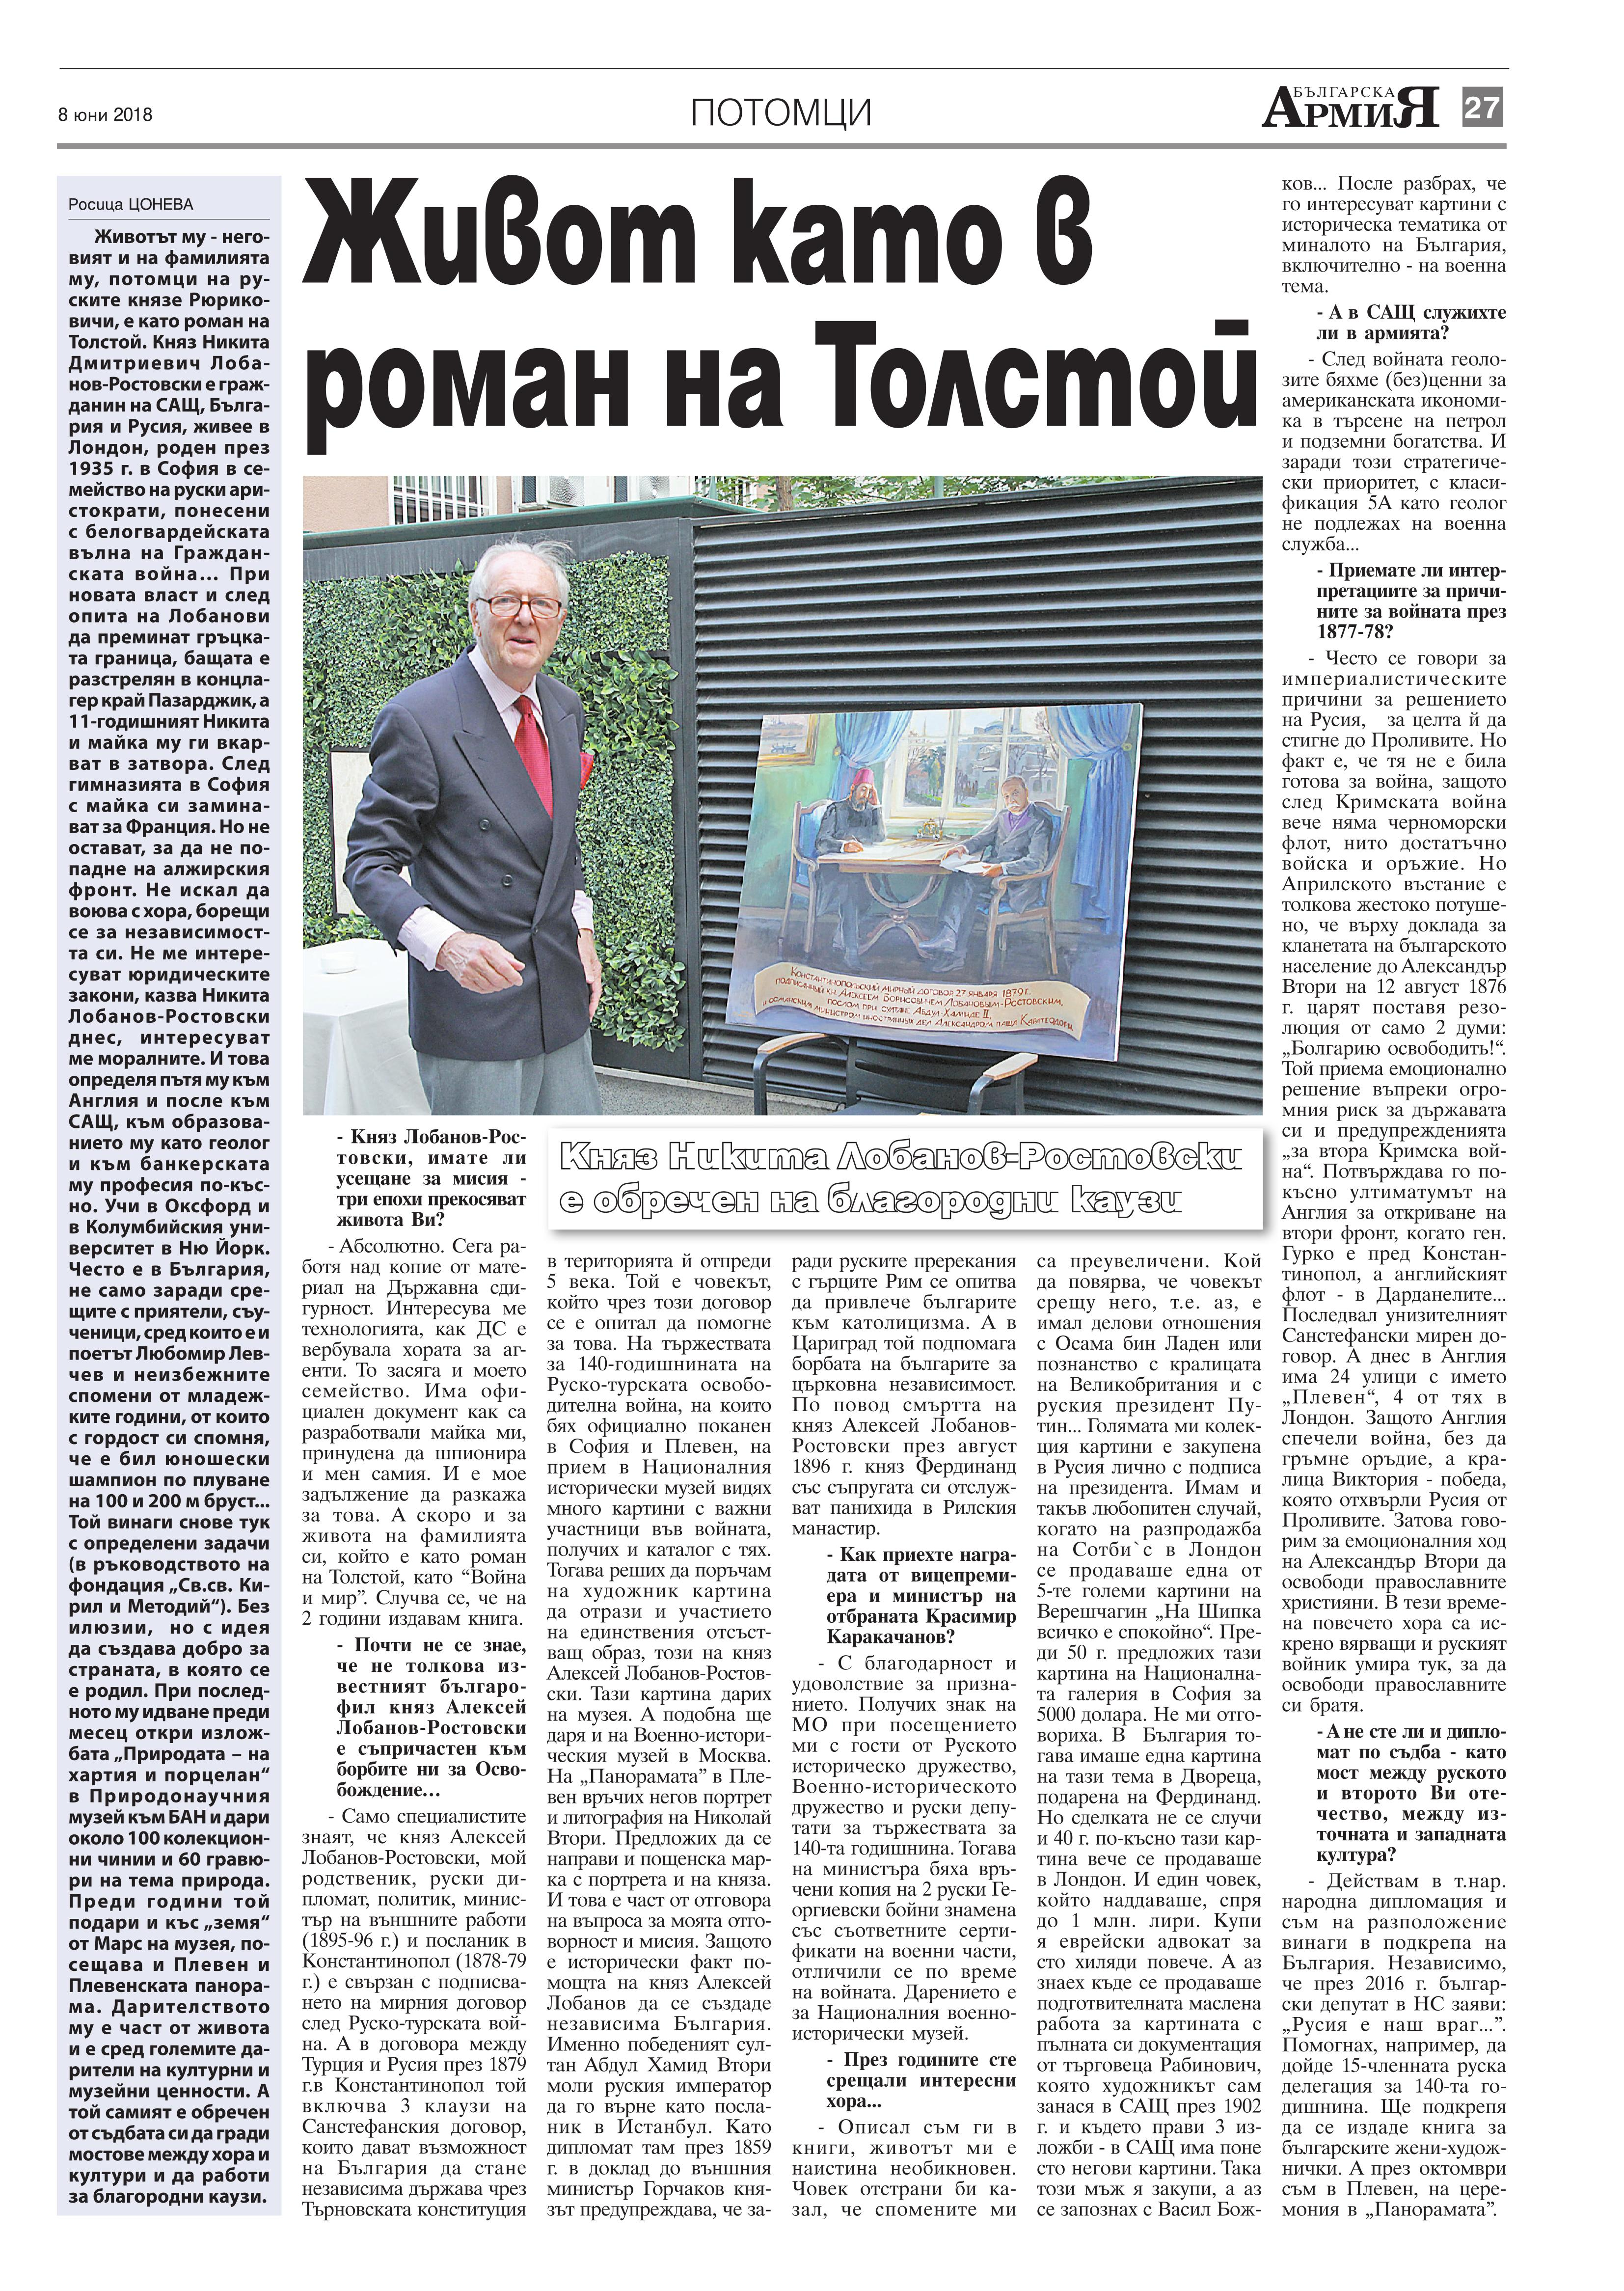 https://armymedia.bg/wp-content/uploads/2015/06/27.page1_-47.jpg